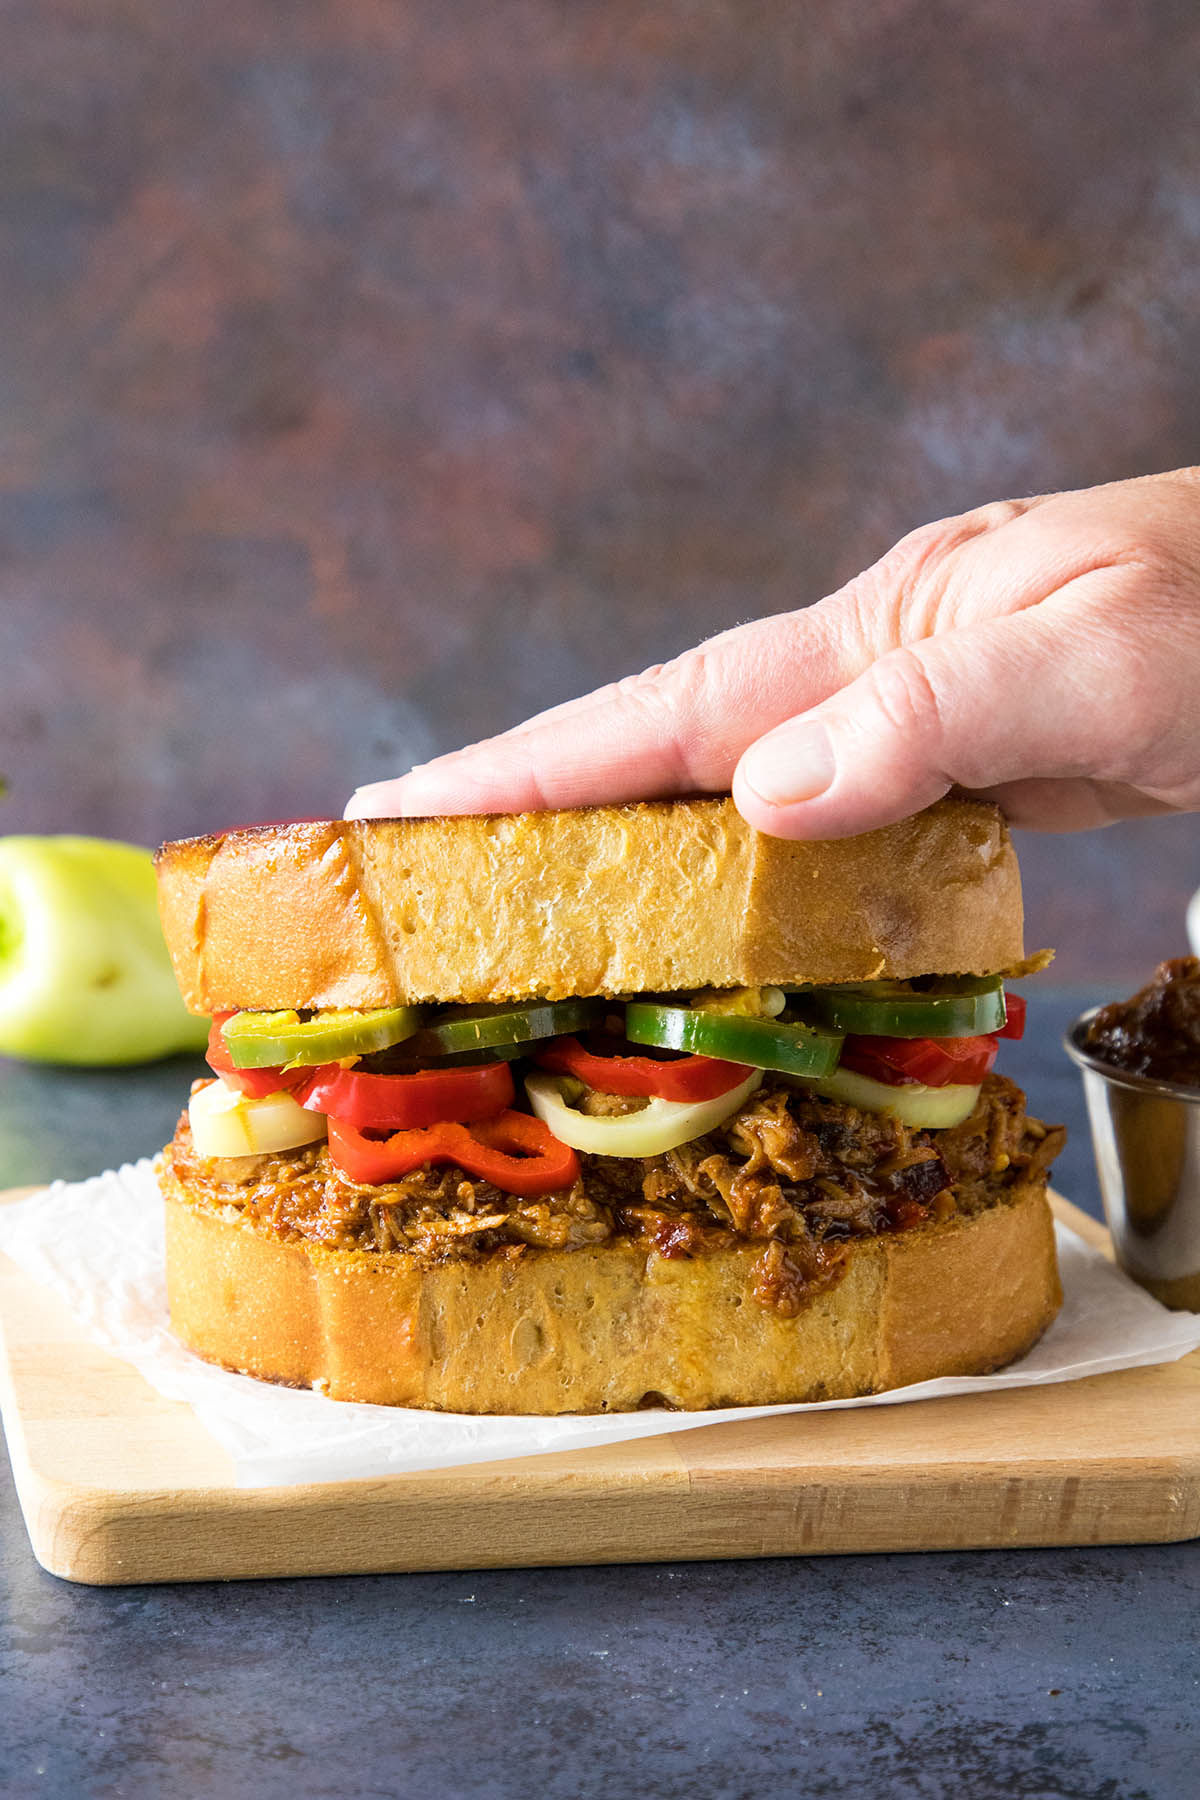 Let's make some Ancho BBQ Pulled Pork Sandwich on Texas Toast.